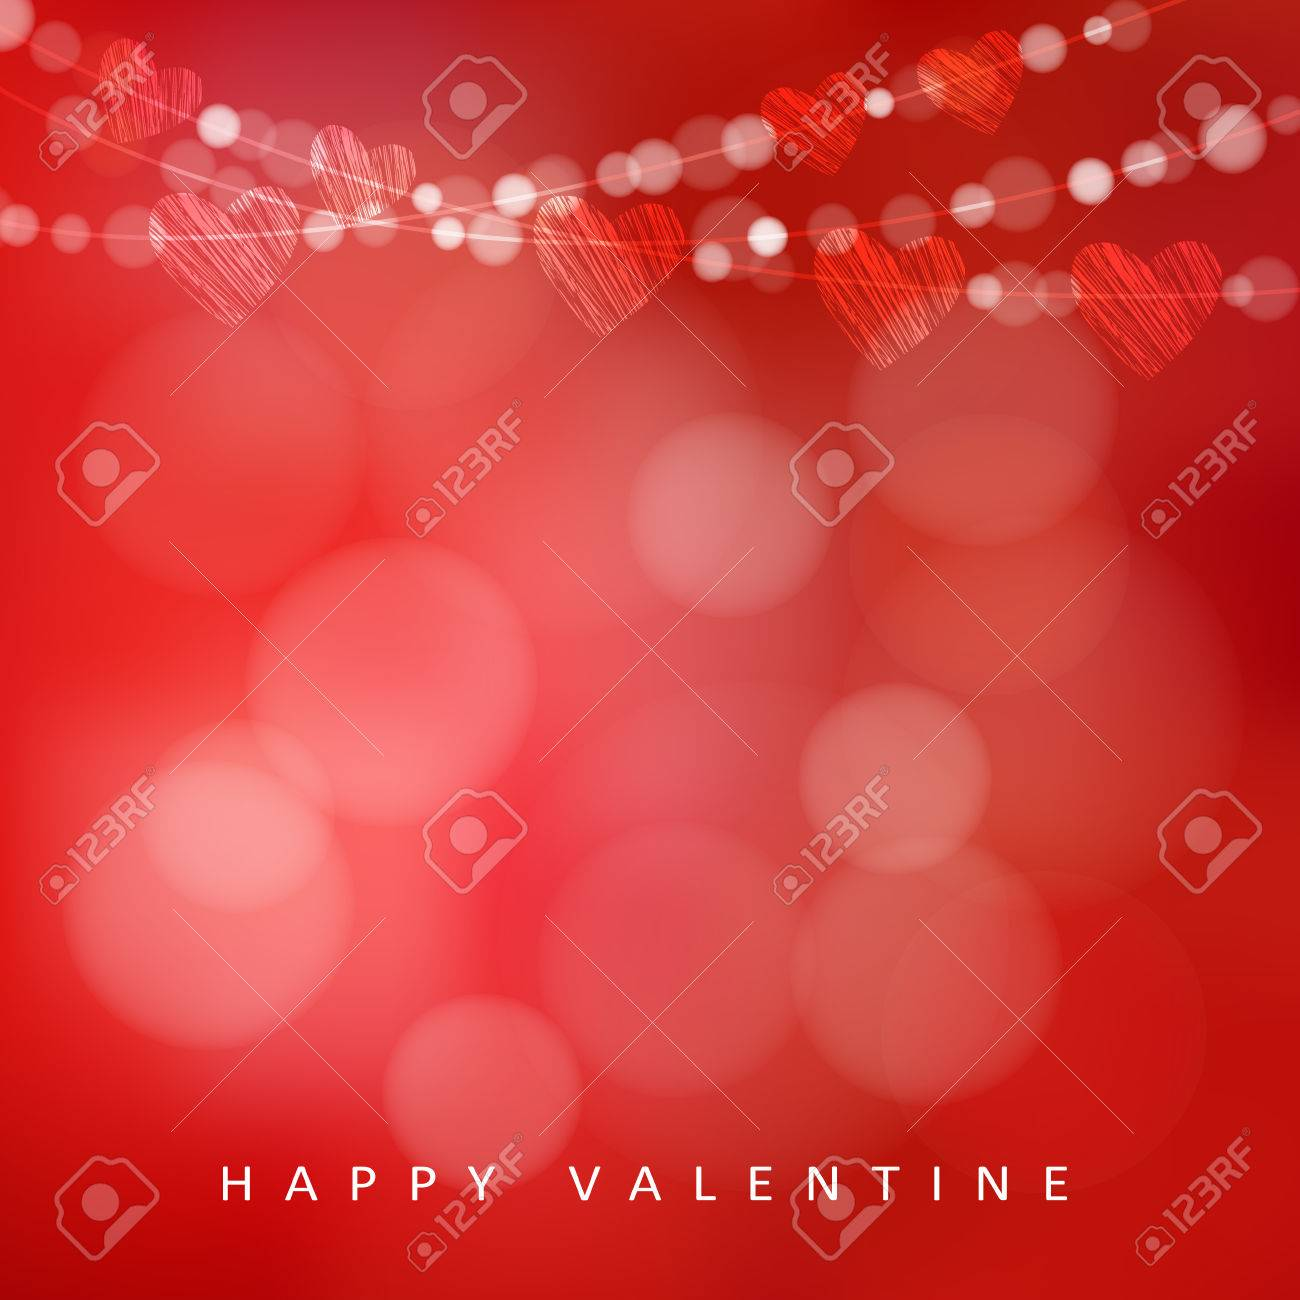 Valentines day card with garland of lights and hearts, vector illustration background - 49852665